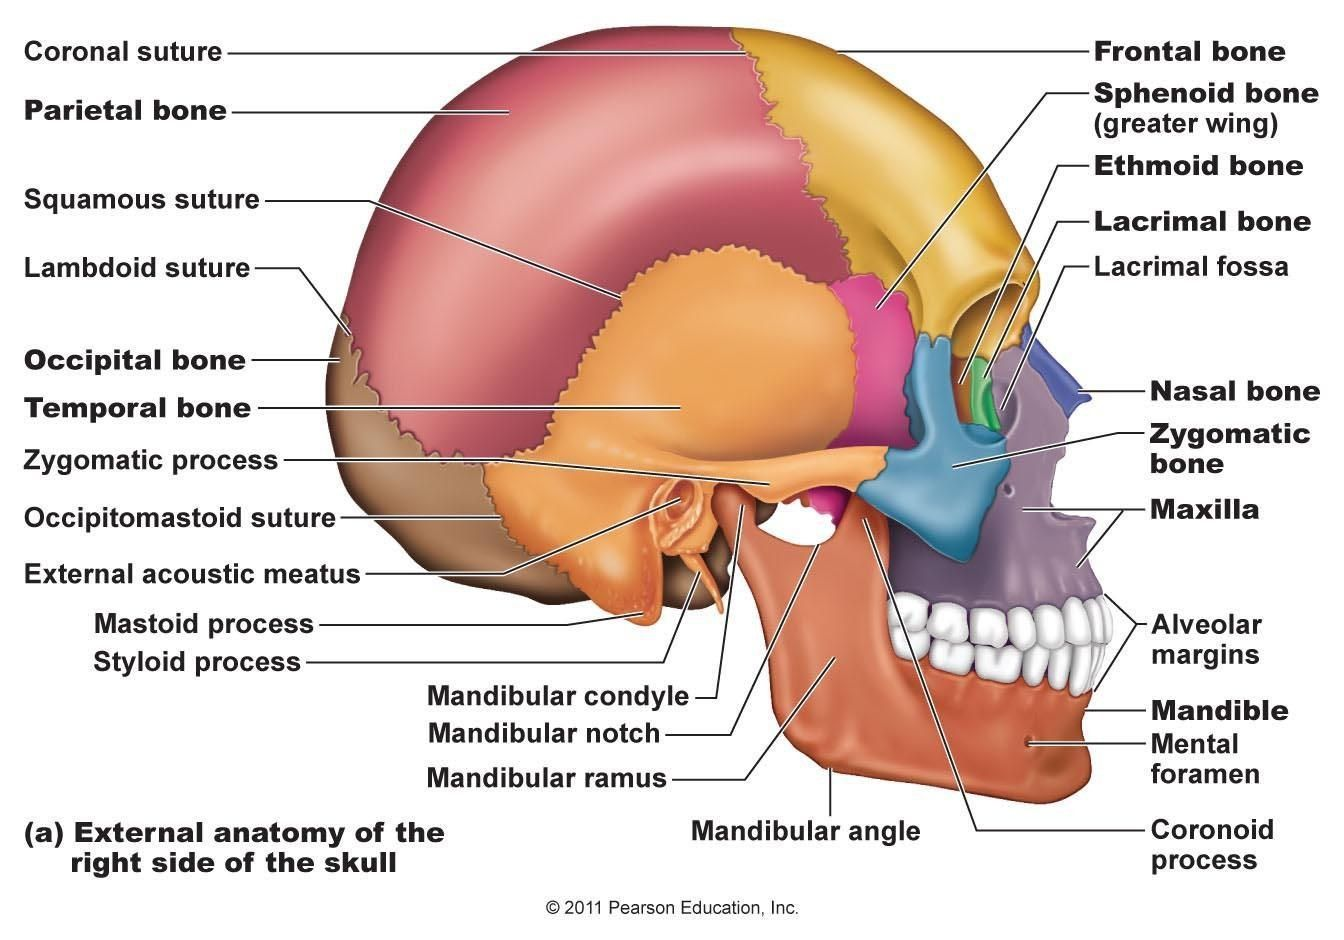 small resolution of ethmoid bone diagram ethmoid bone diagram diagram of the skull bones diagram of the skull